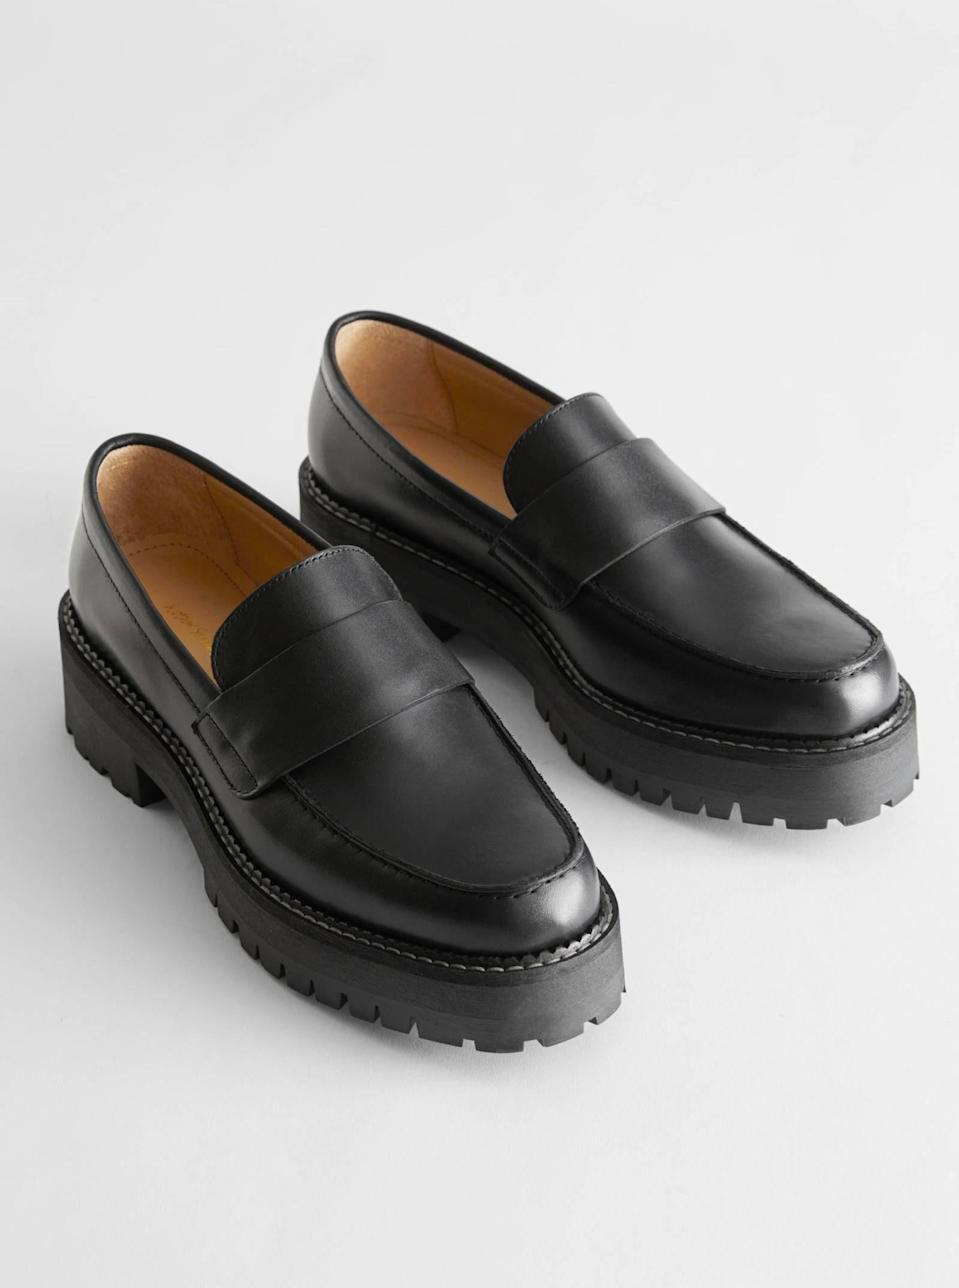 """$129, & Other Stories. <a href=""""https://www.stories.com/en_usd/shoes/flats/loafers/product.chunky-leather-penny-loafers-black.0965162001.html"""" rel=""""nofollow noopener"""" target=""""_blank"""" data-ylk=""""slk:Get it now!"""" class=""""link rapid-noclick-resp"""">Get it now!</a>"""